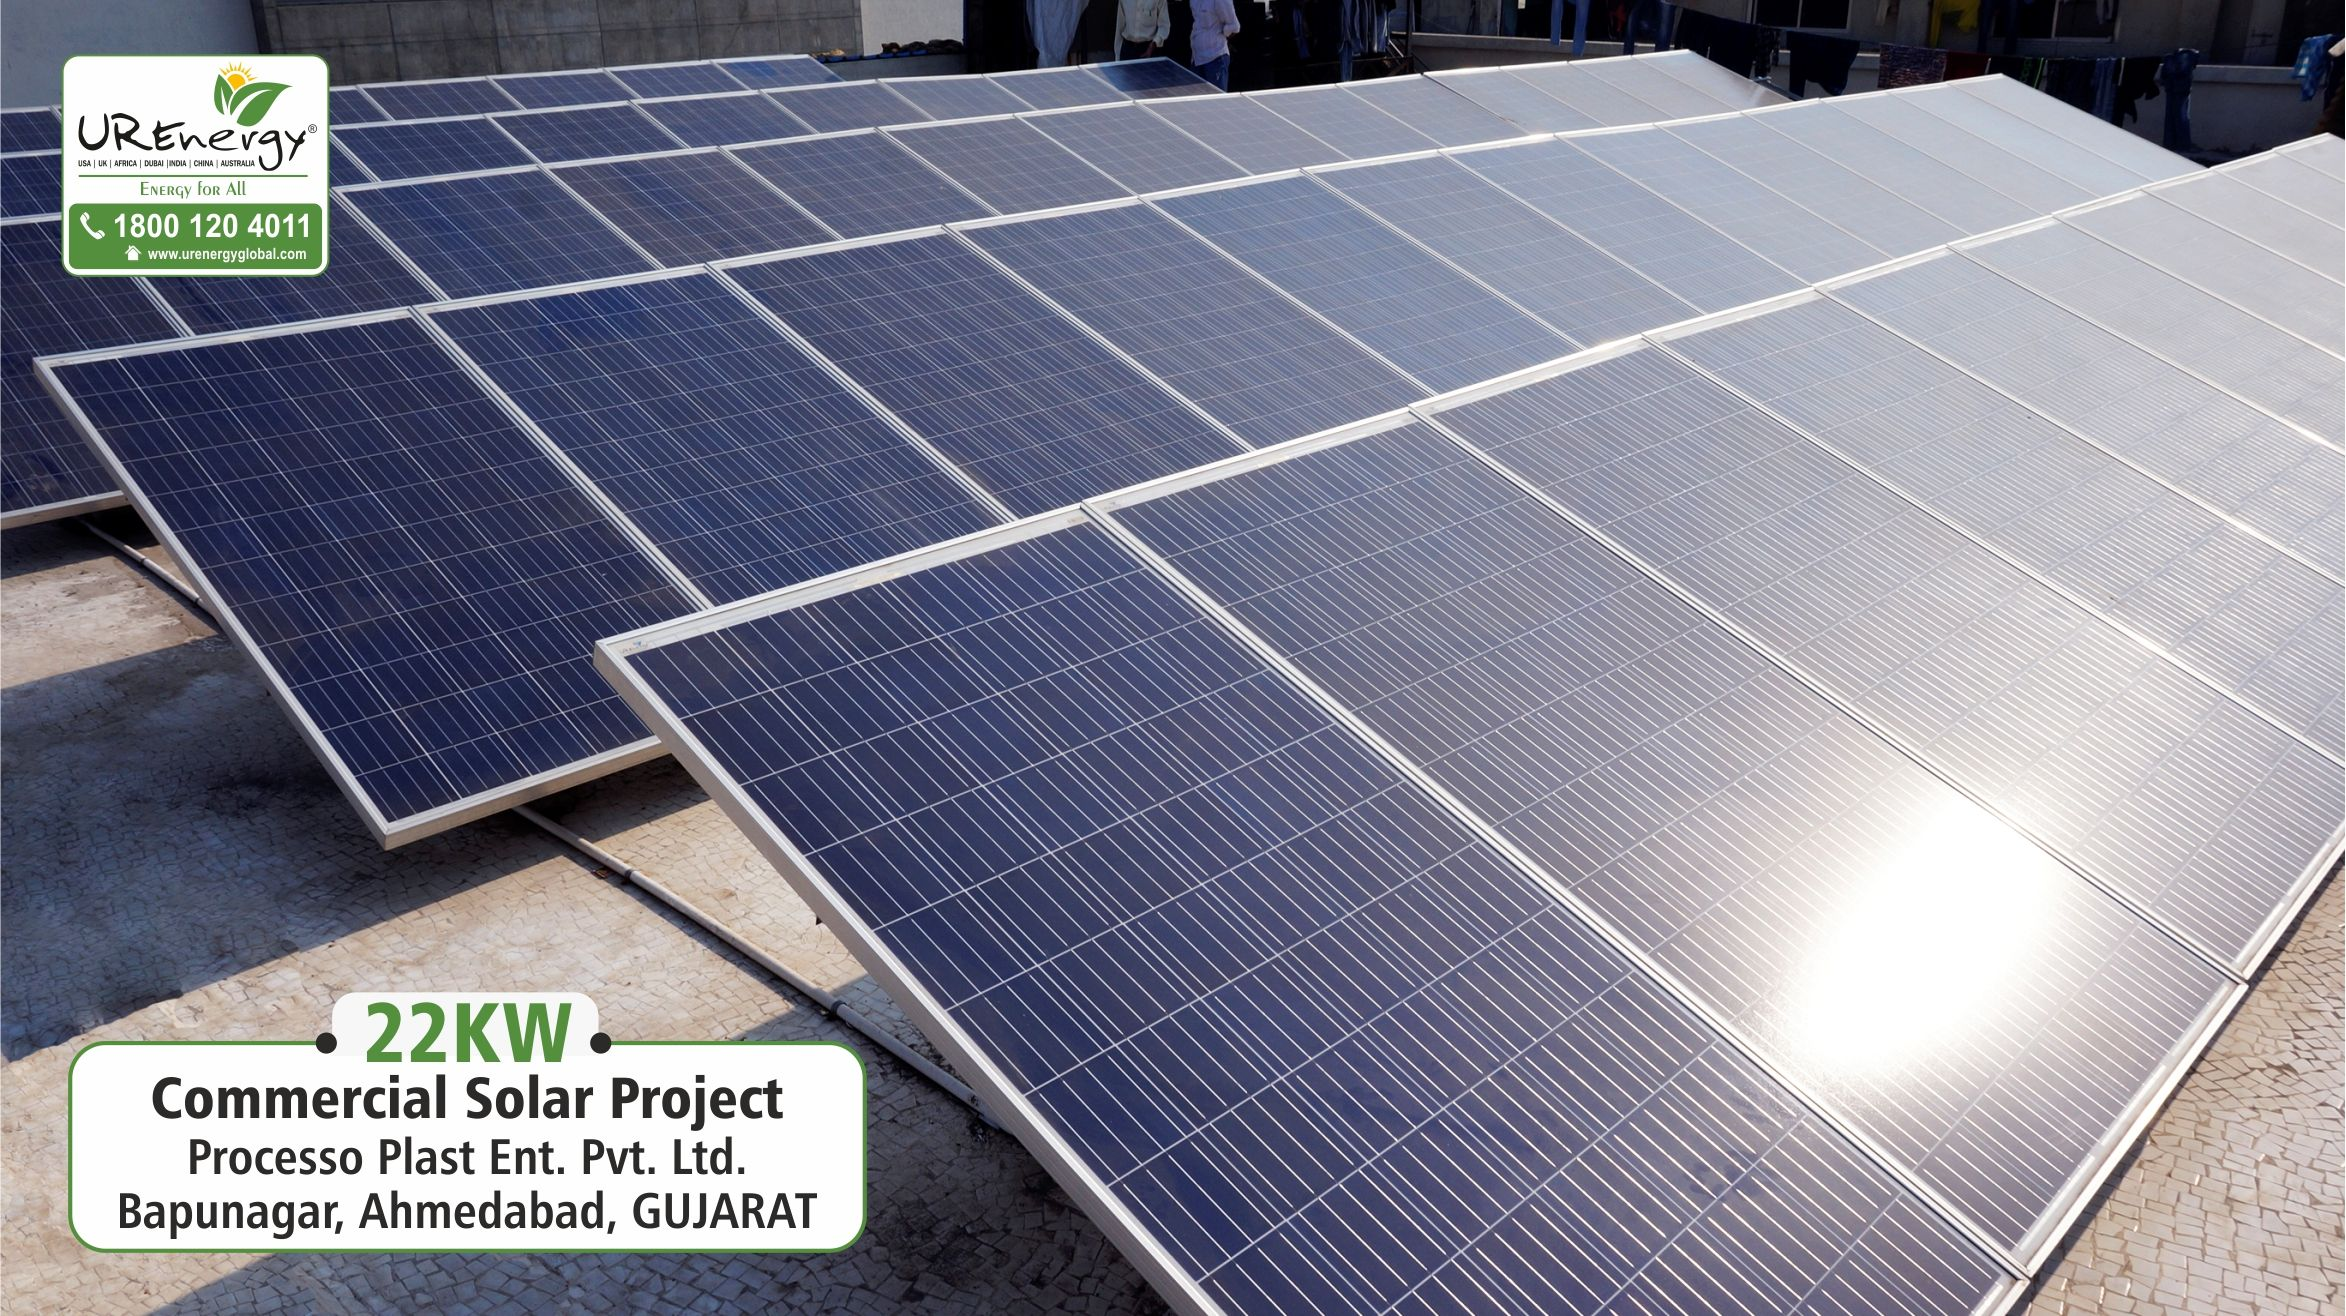 Ngo Commercial Solar Packages 10 Kw Solar Panel System Kit U R Energy Solar Panels Solar Panel Systems